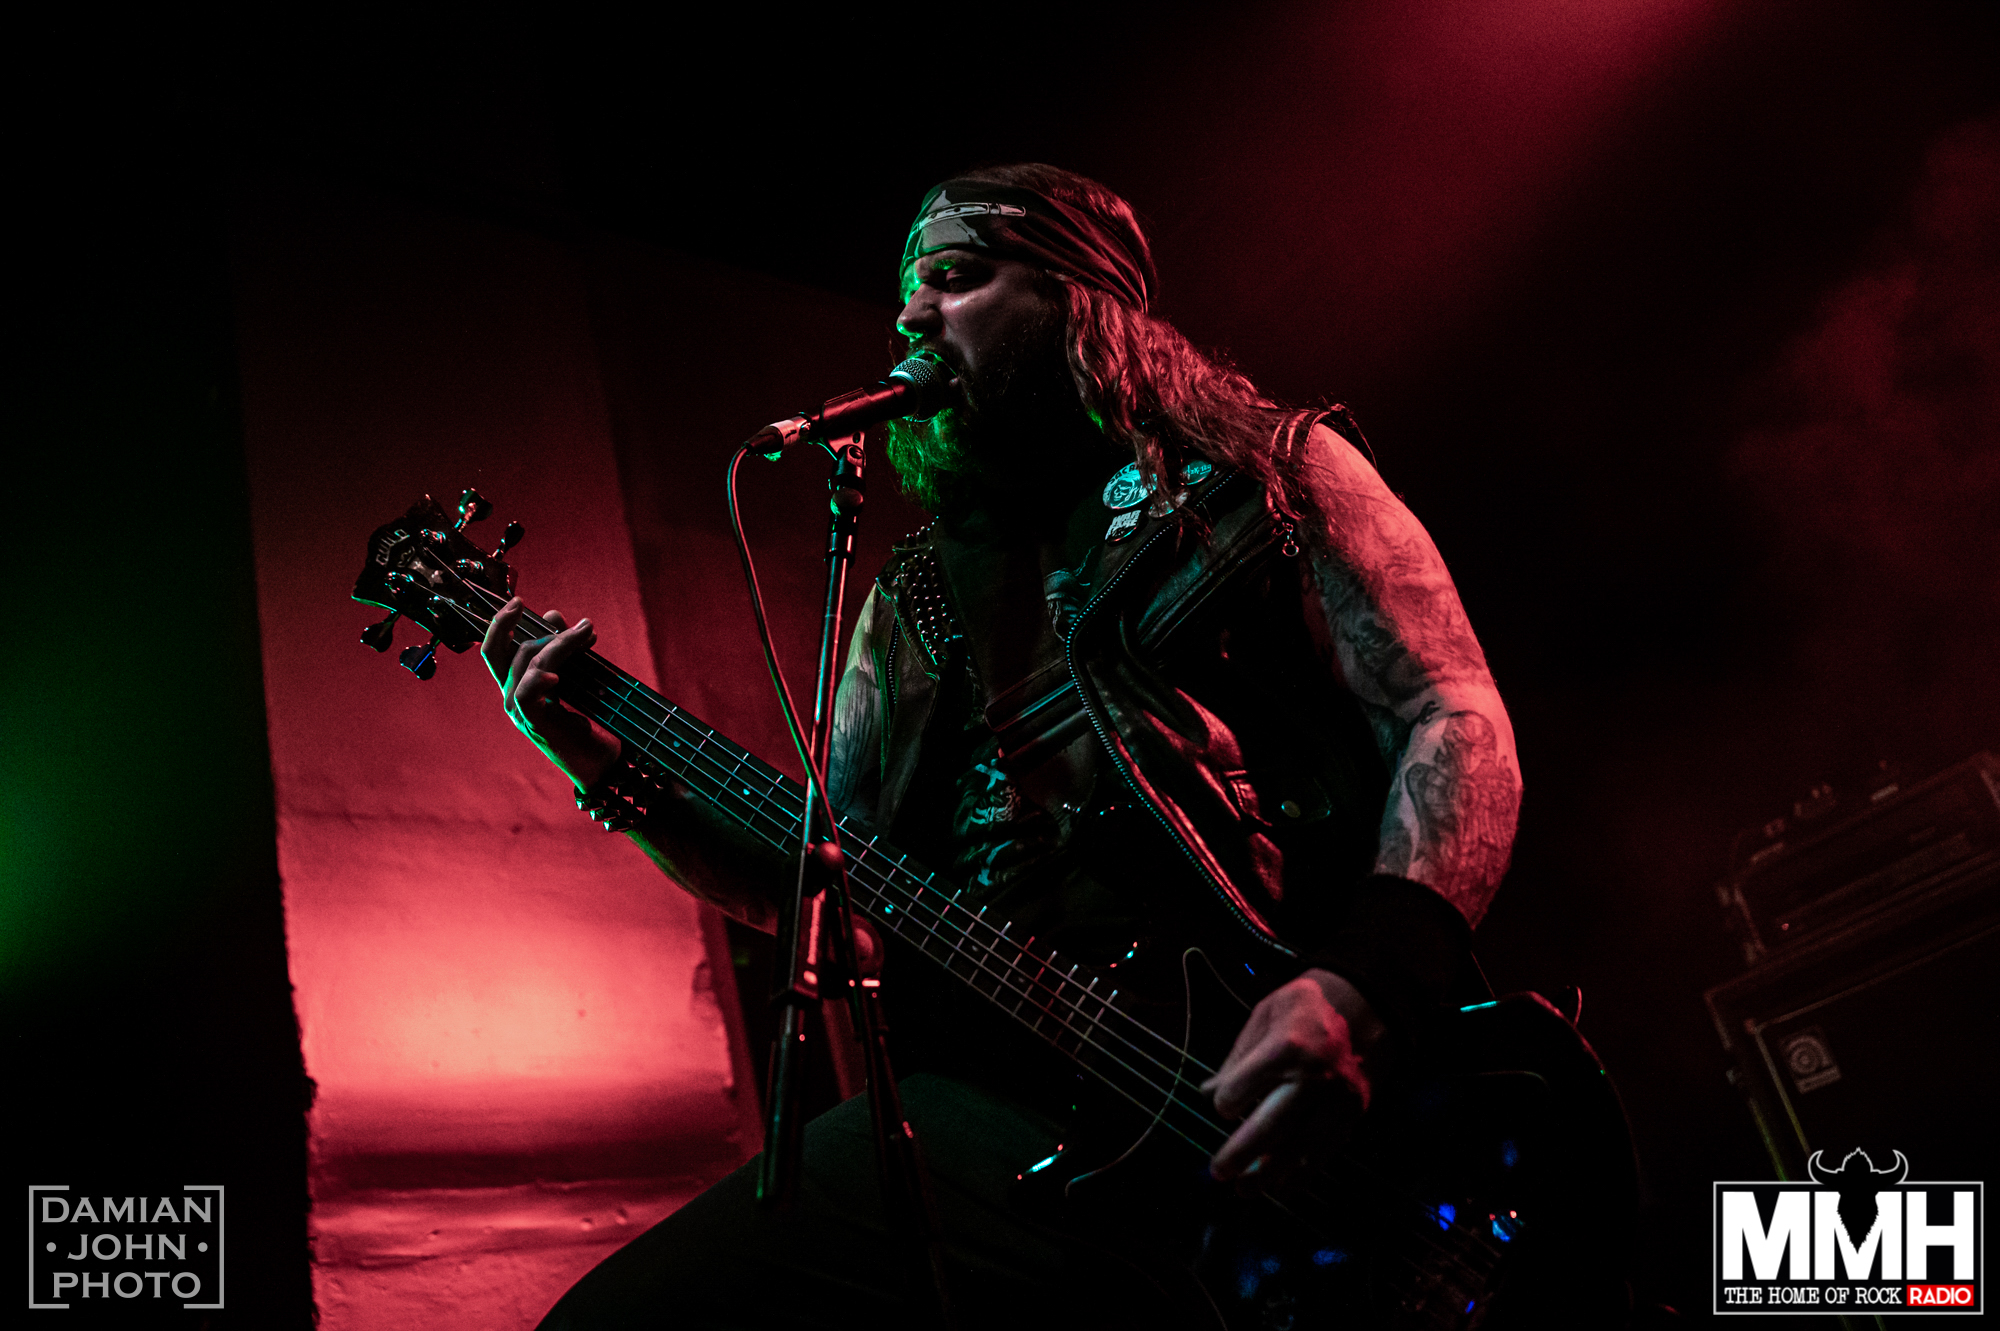 american heavy metal band bat performing at the O2 Institute birmingham